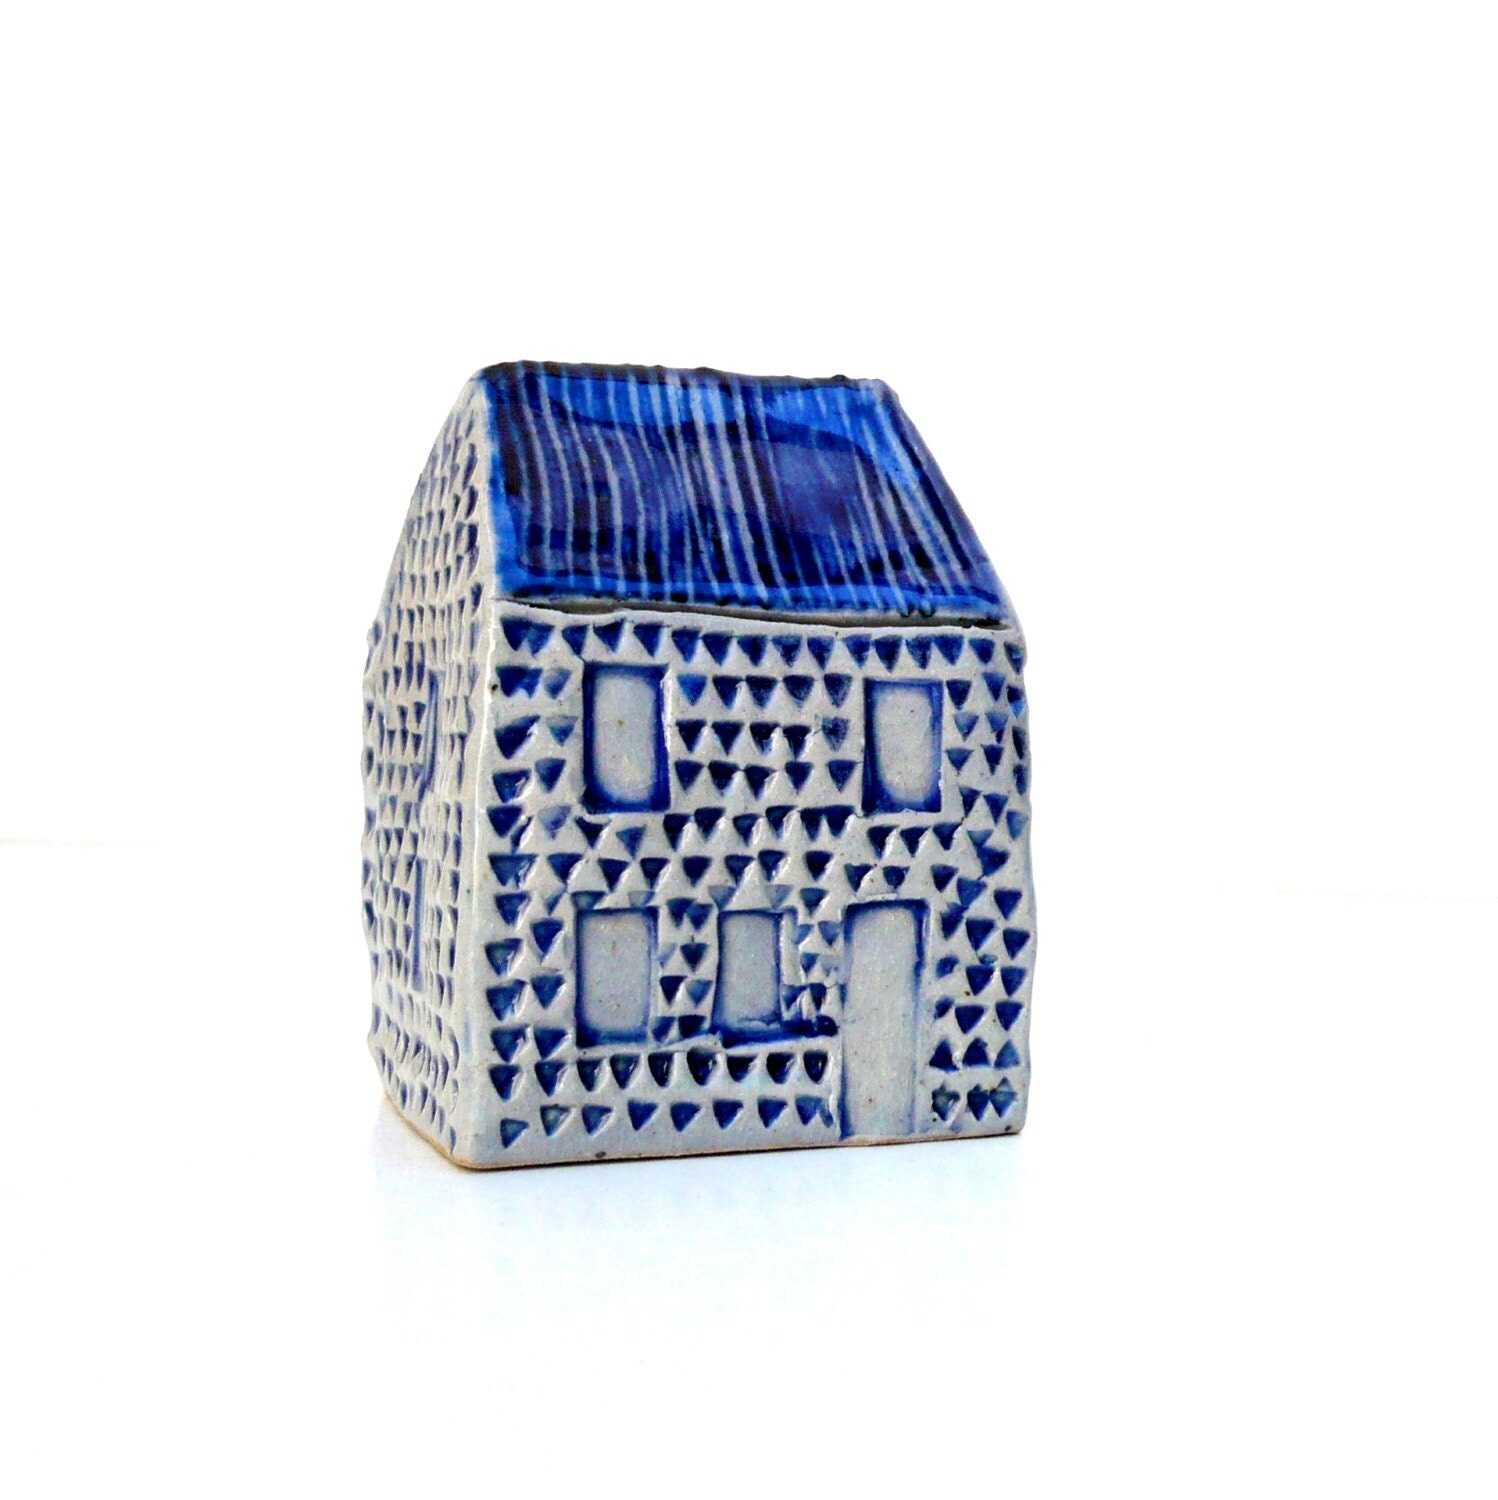 Blue And White Ceramic House. Miniature House. OOAK. - BlueMagpieDesign